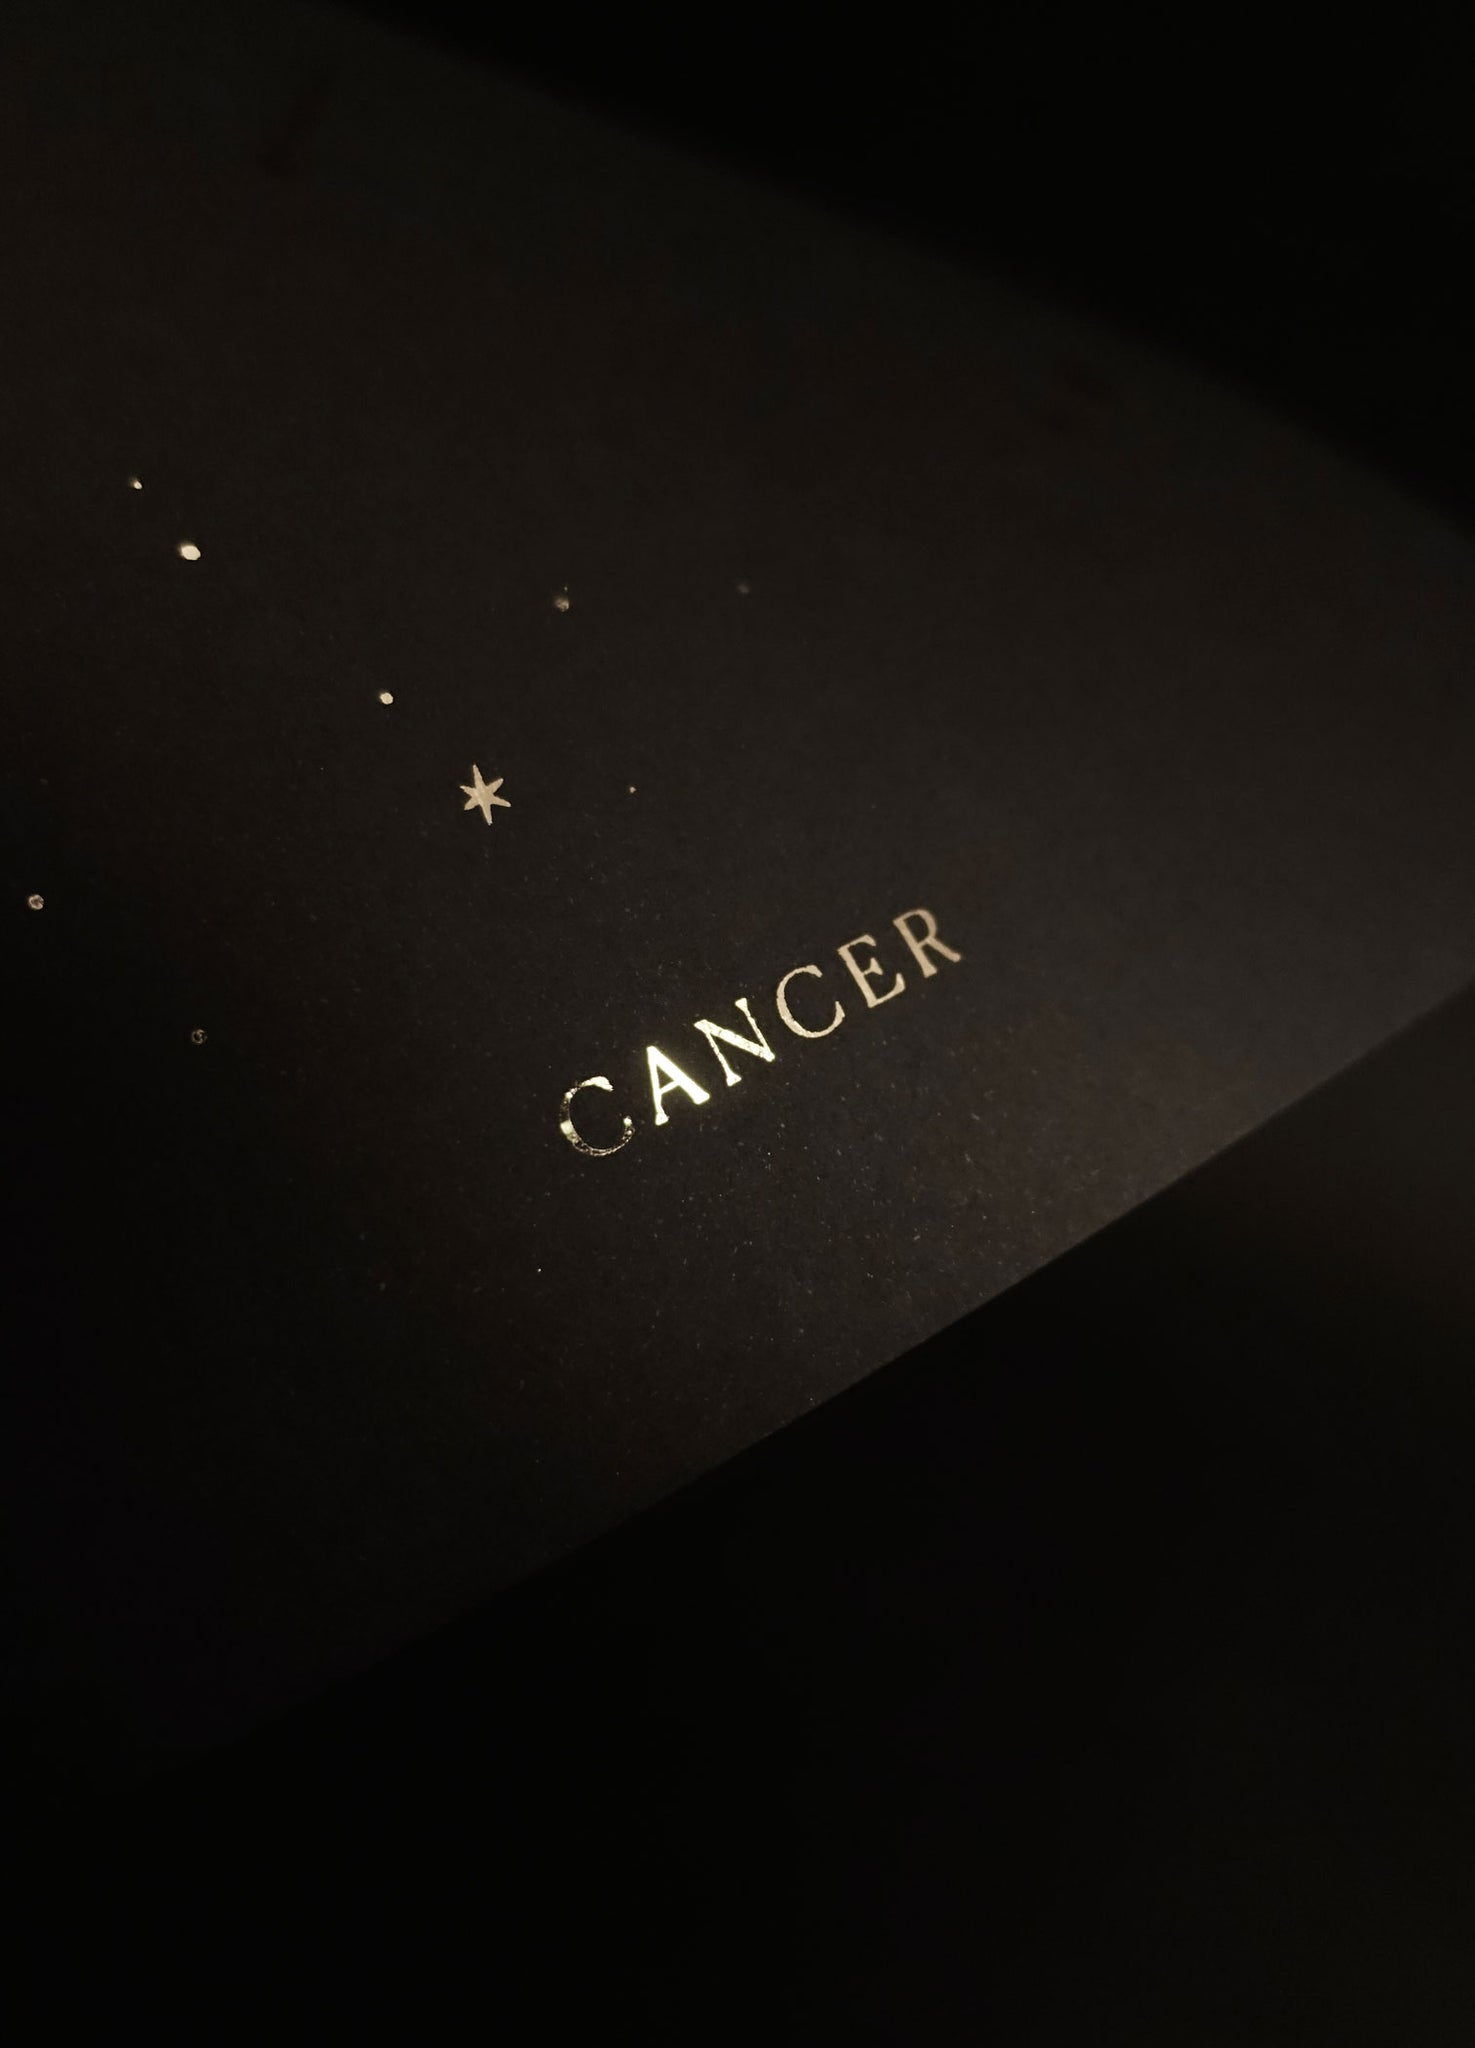 Cancer zodiac constellation gold metallic foil print on black paper by Cocorrina